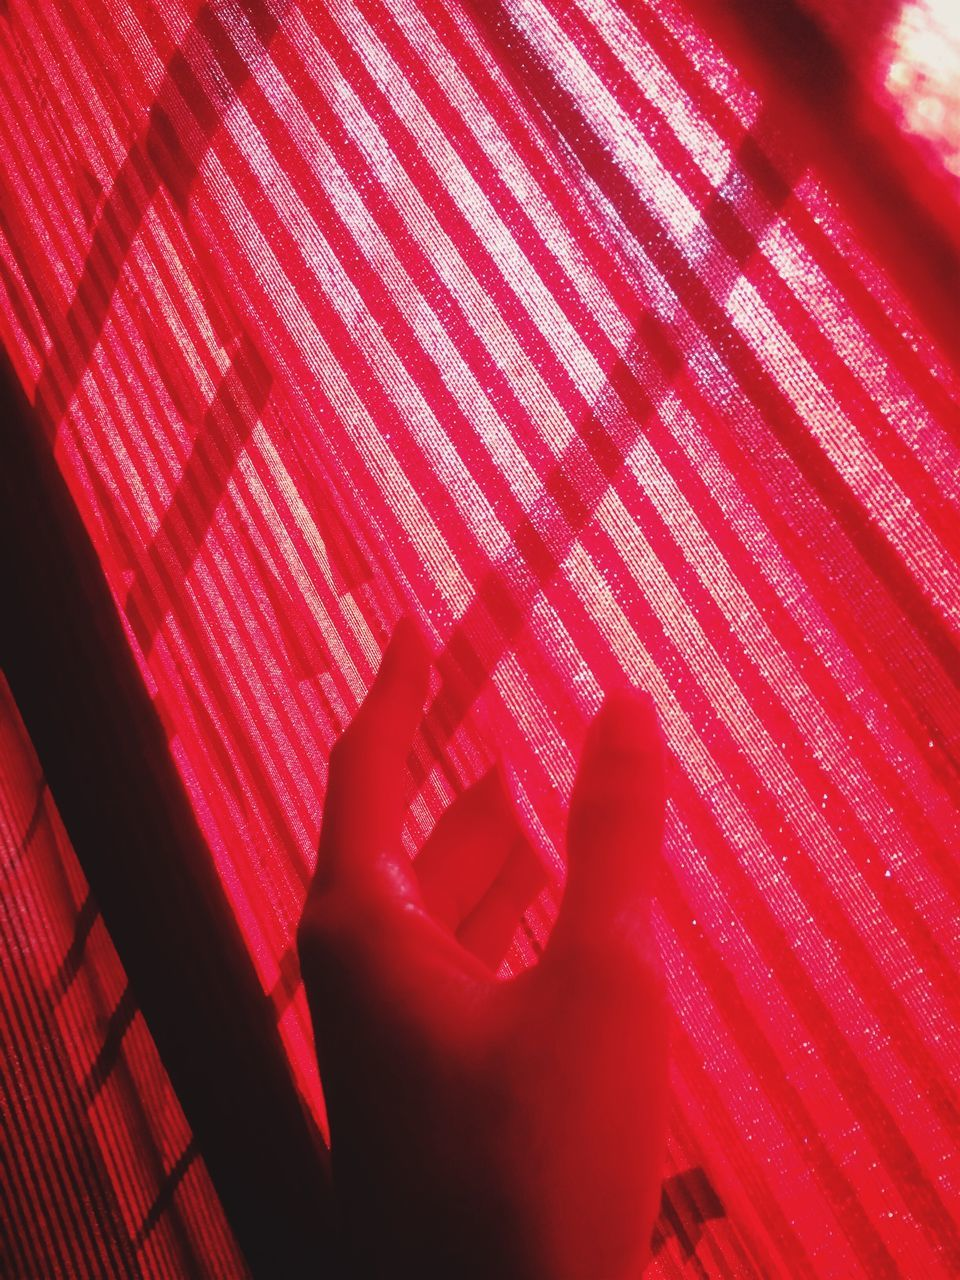 red, indoors, real people, close-up, one person, human hand, day, people